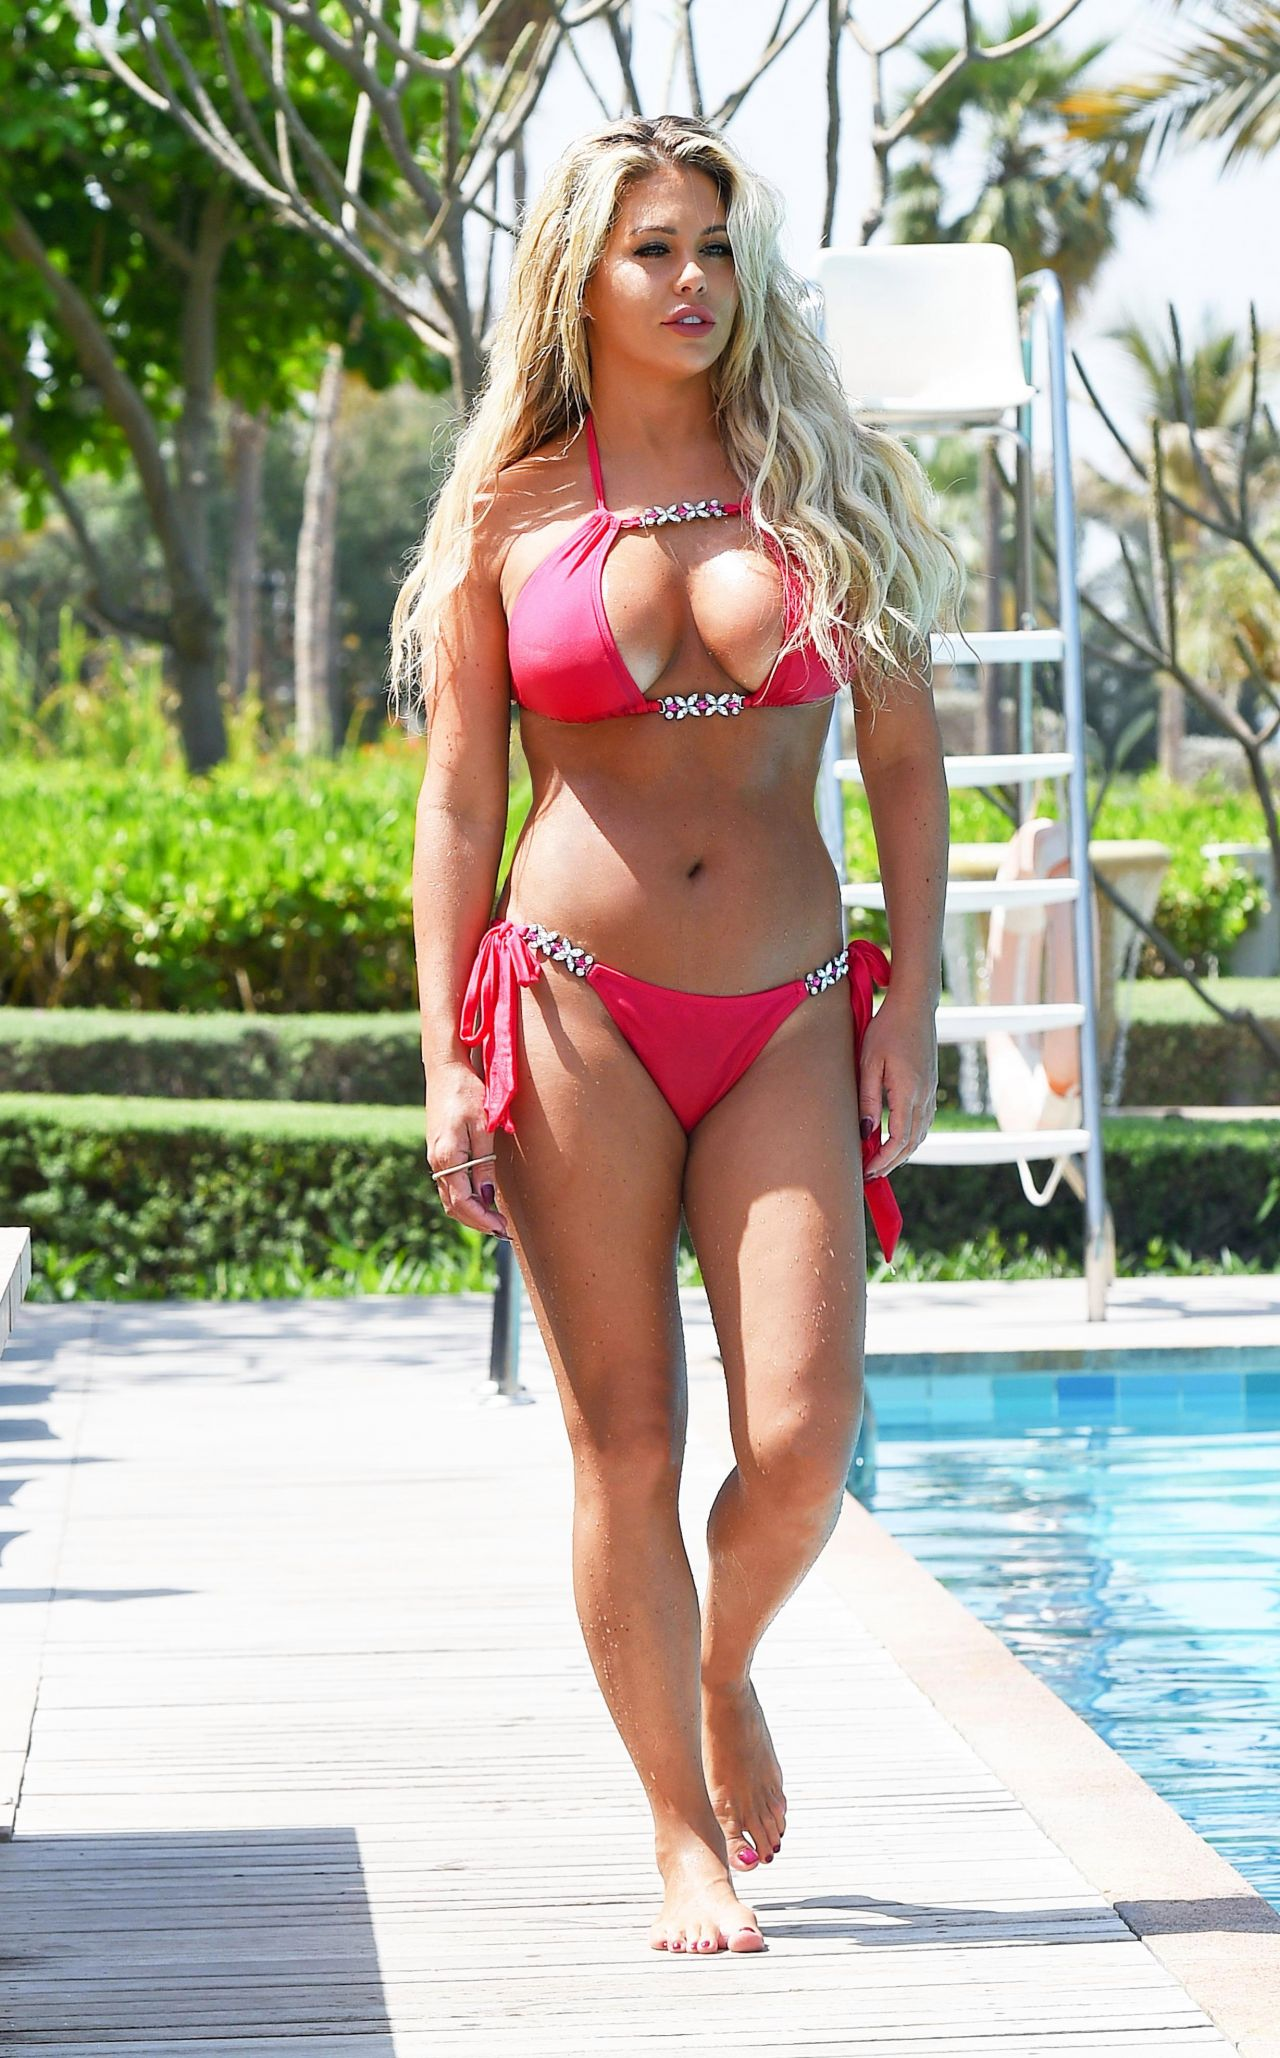 Bianca Gascoigne nudes (96 foto and video), Sexy, Bikini, Twitter, in bikini 2019